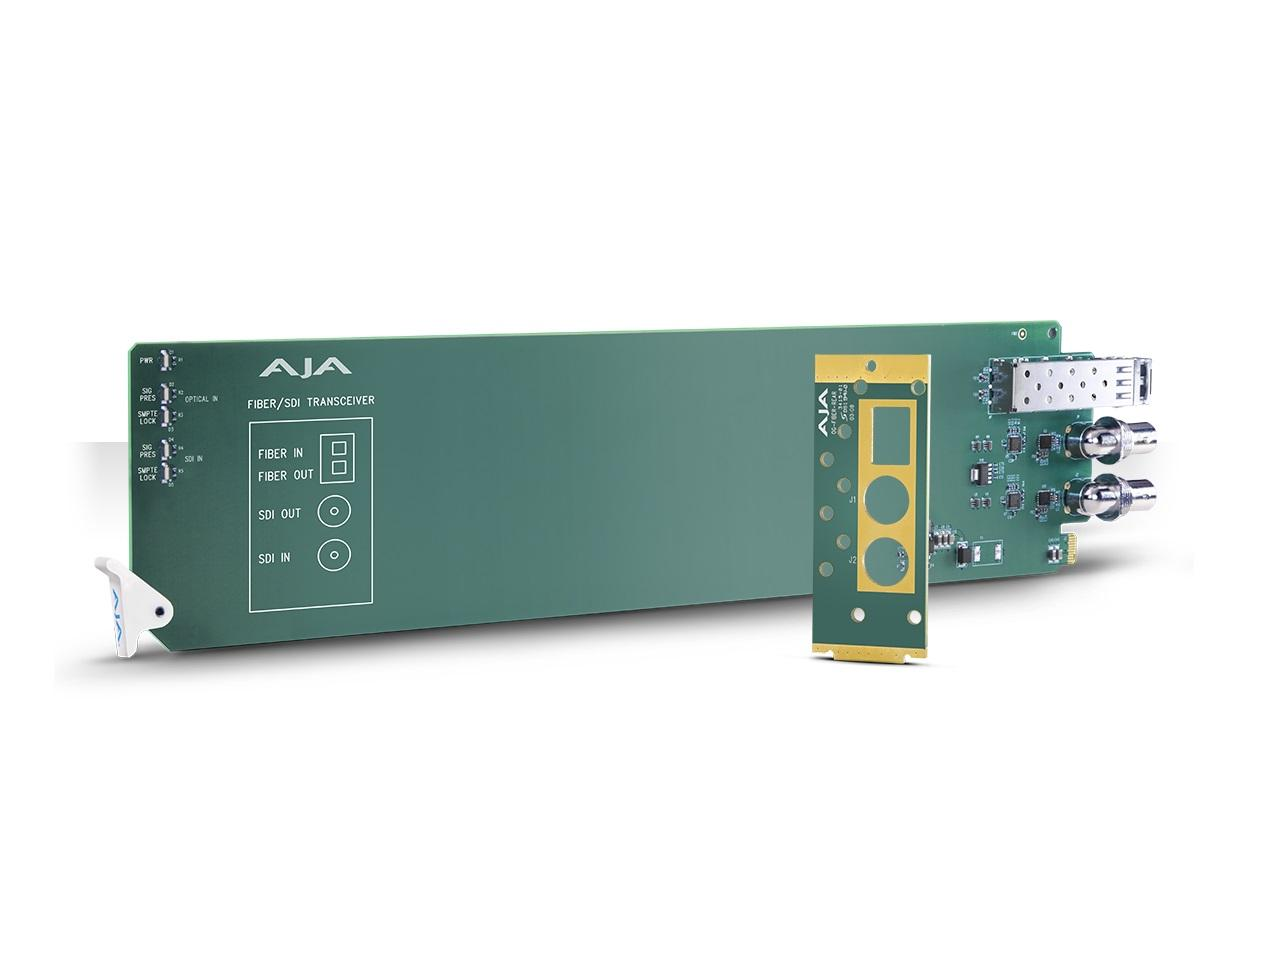 AJA OG-FIBER-TR-MM openGear 1-Channel 3G-SDI/LC Multi-Mode LC Fiber Transceiver